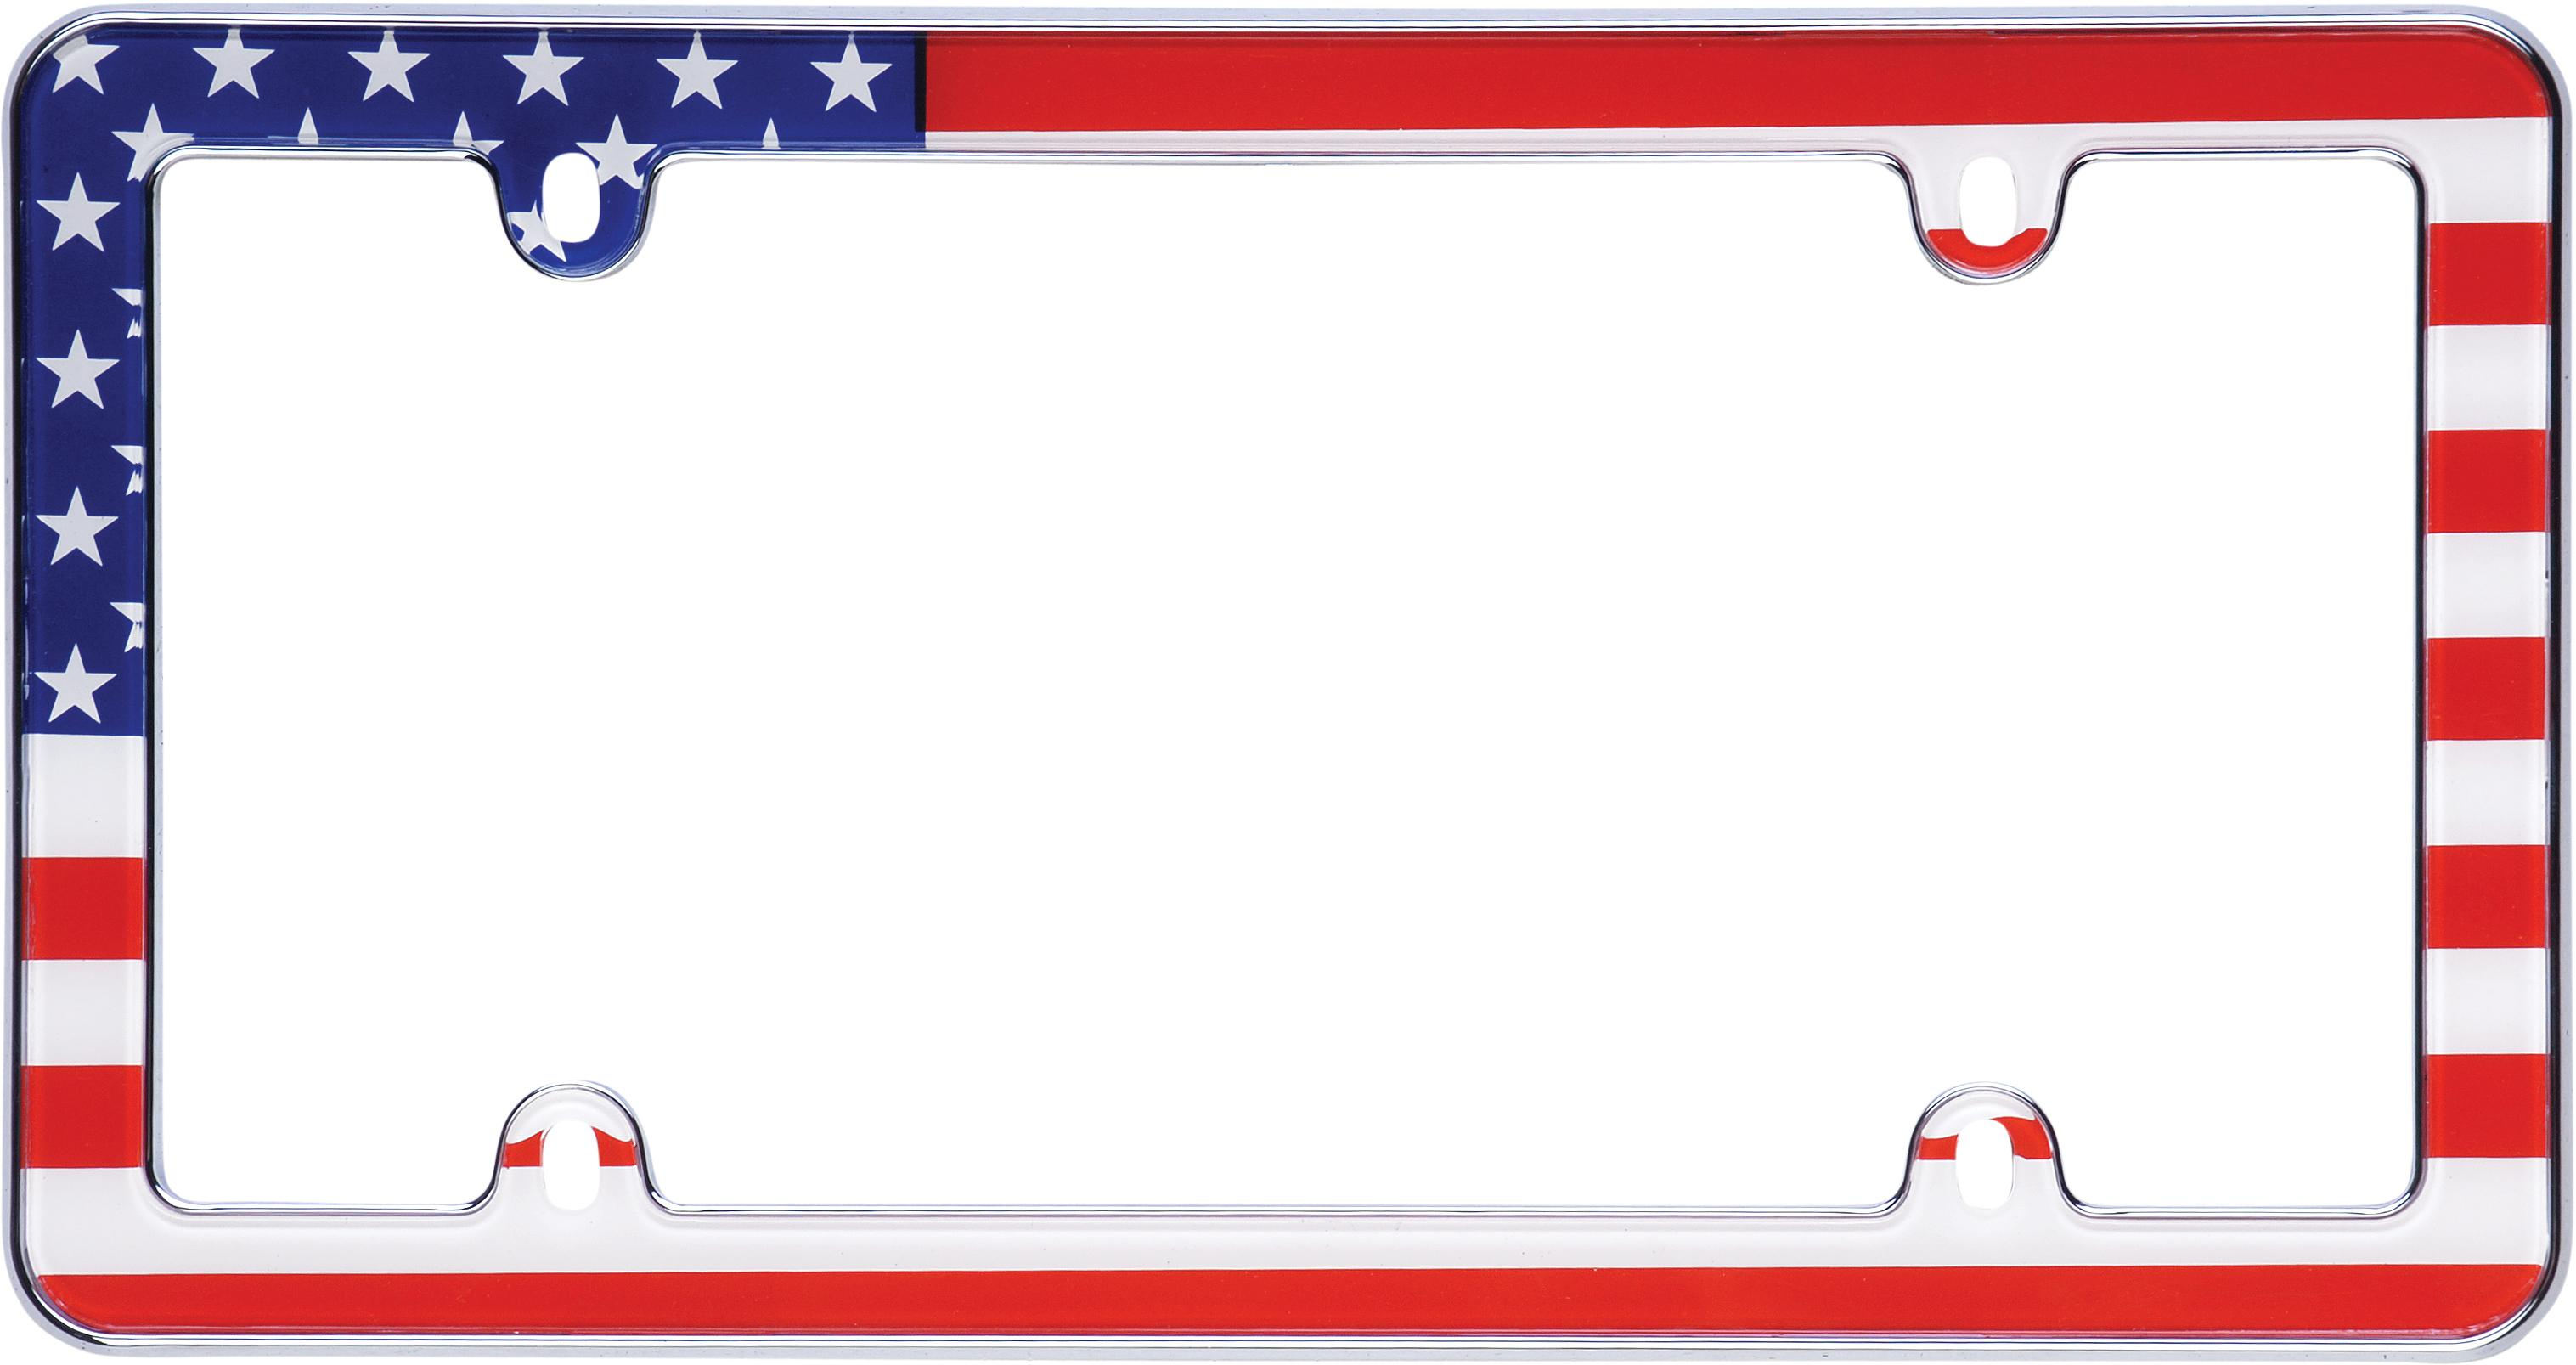 Amazon.com: Cruiser Accessories 23003 Chrome USA Flag License Plate ...